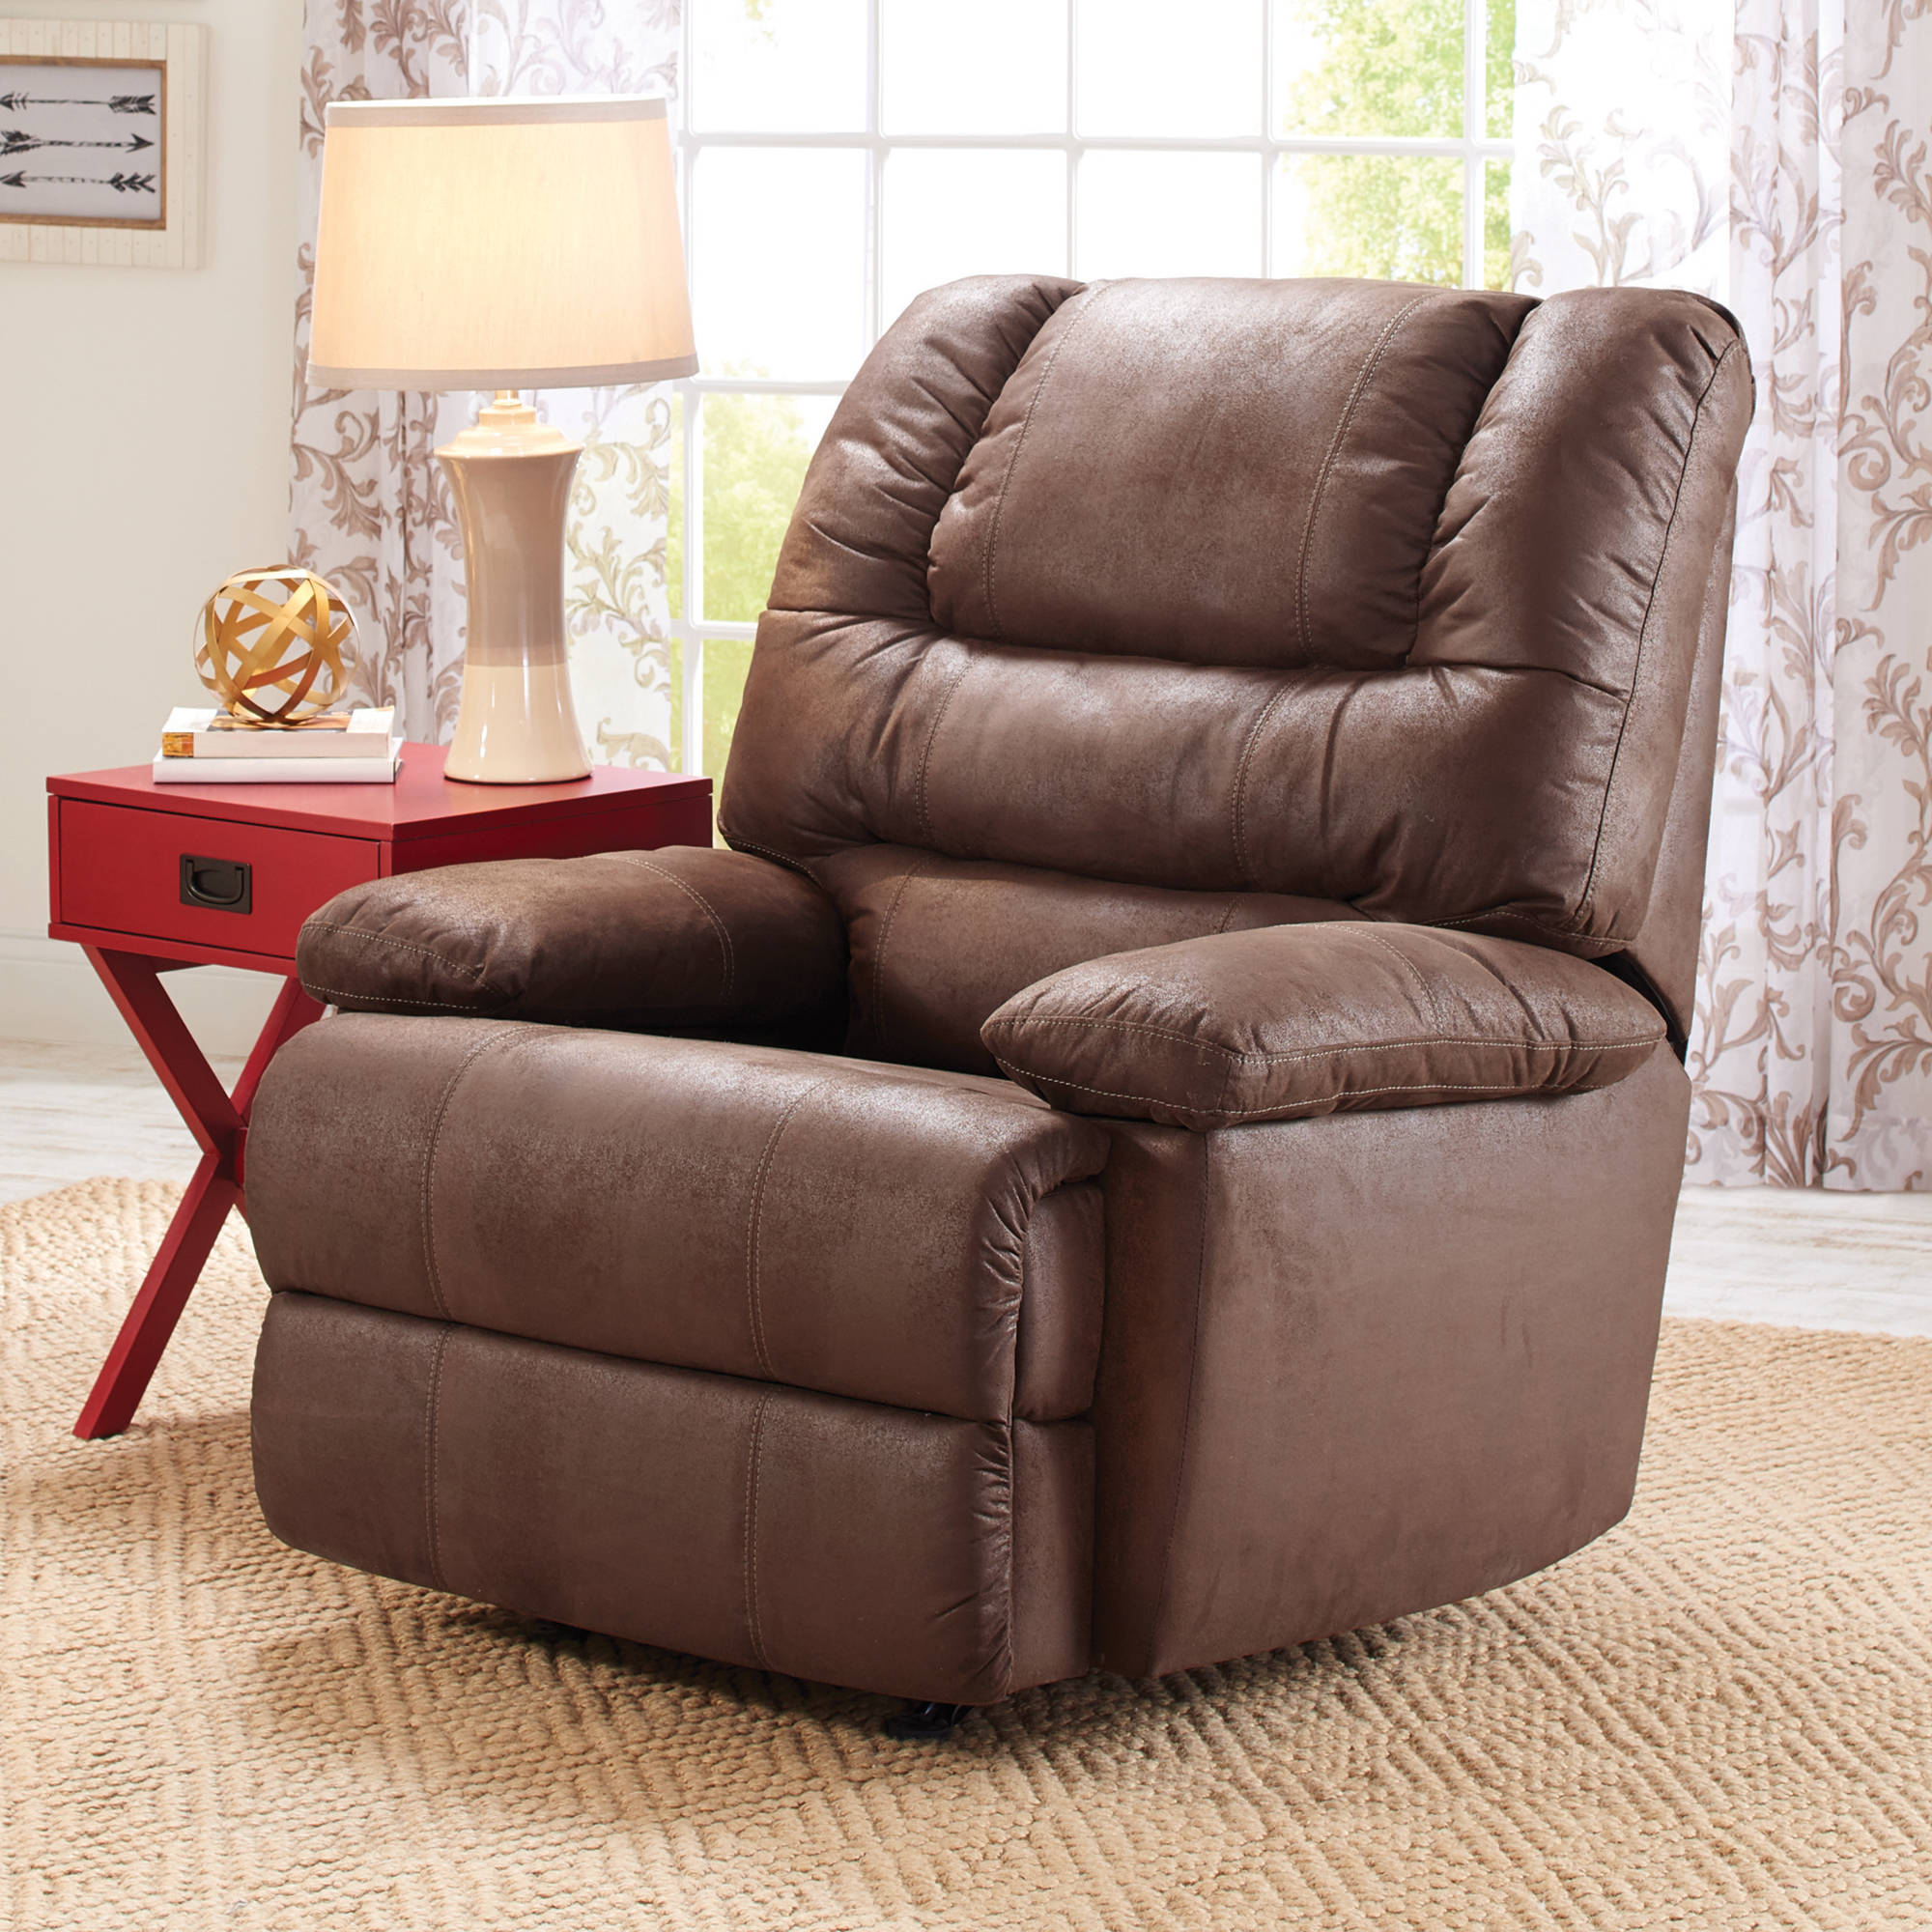 arms bench wide storage double brylanehome plush review mag recliner things chairs sofa with gallery extra arm chair